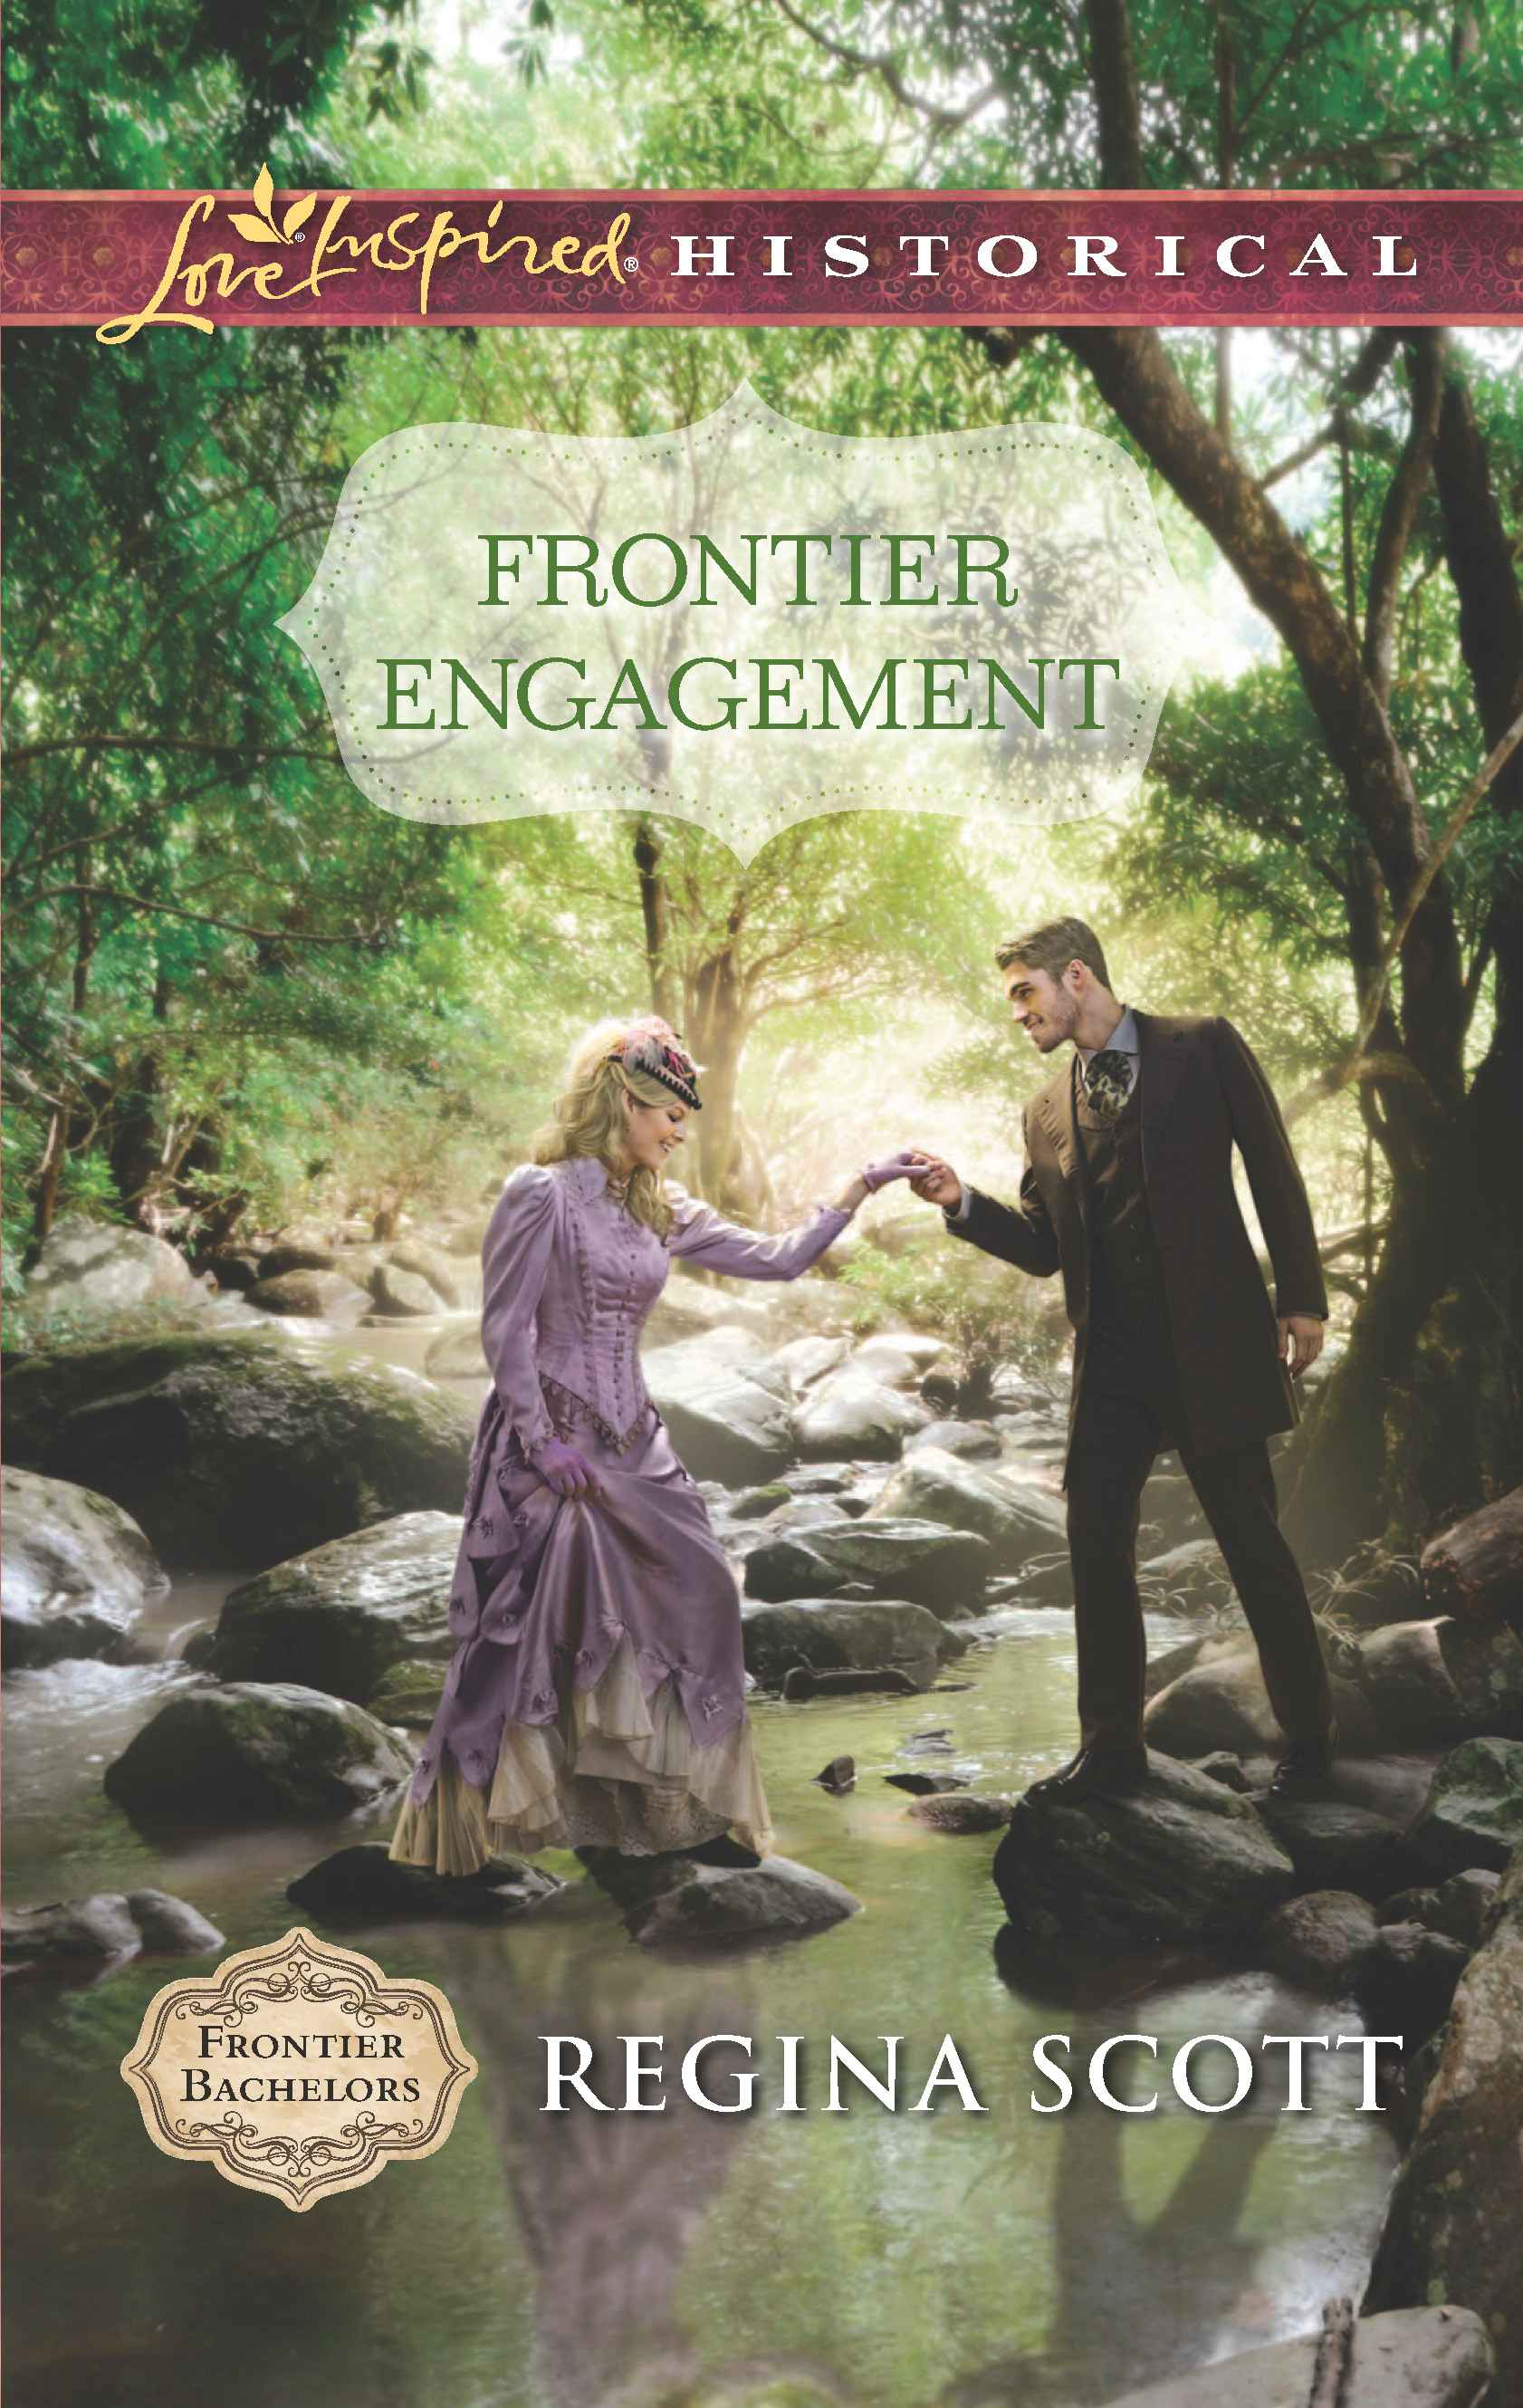 Cover for Frontier Engagement by Regina Scott, Book 3 in the Frontier Bachlors series